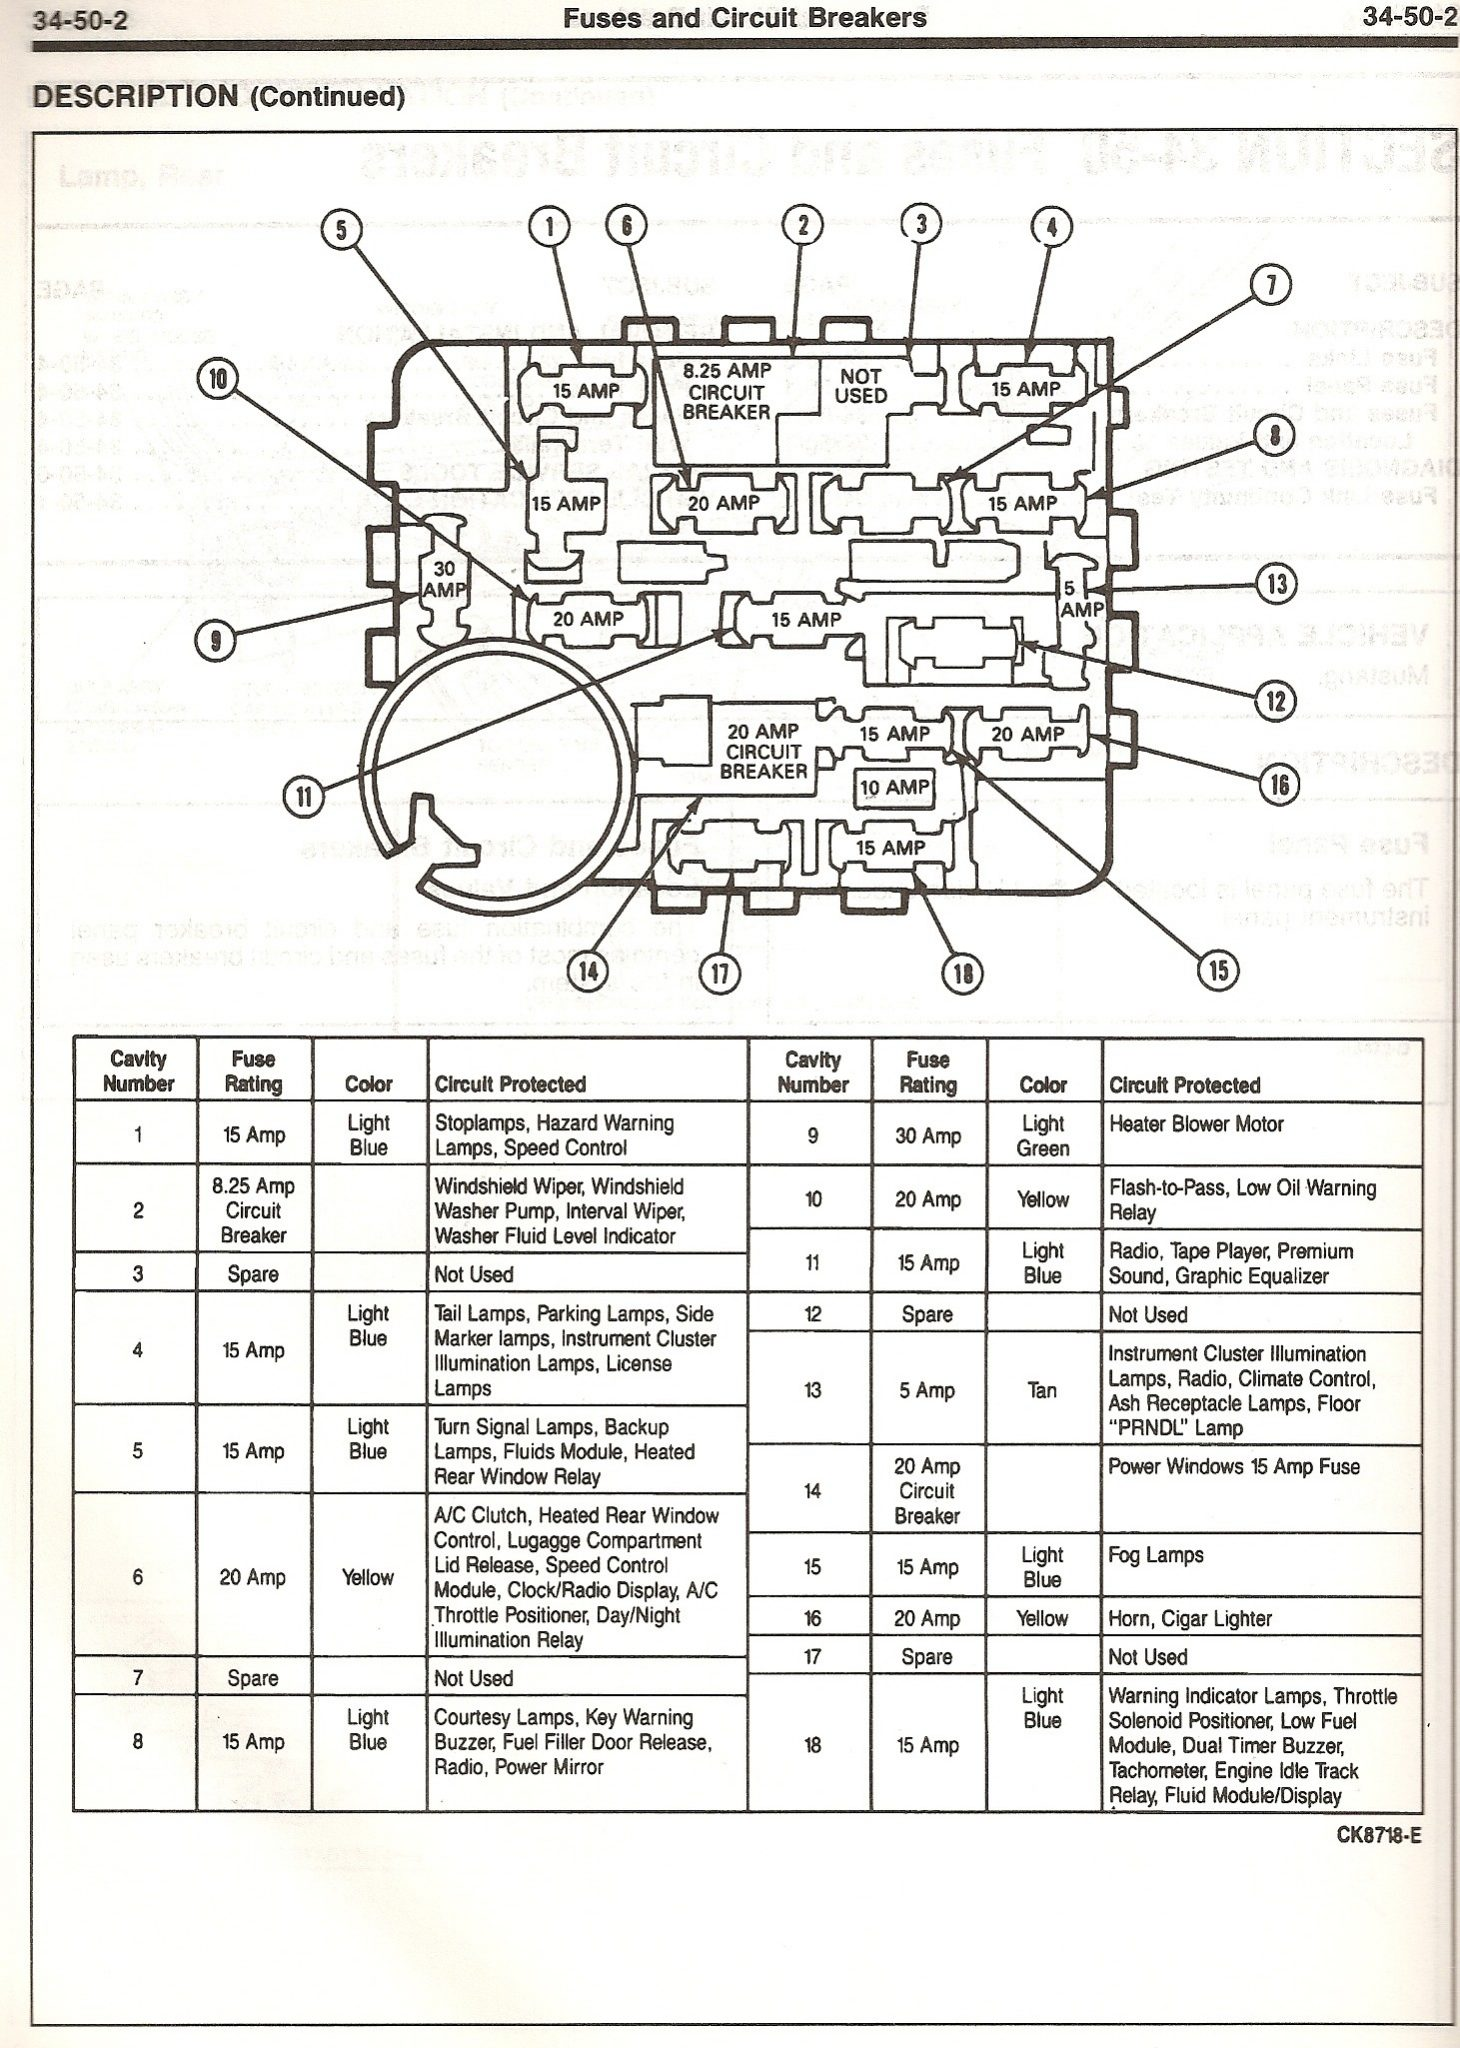 96 dodge caravan stereo wiring diagram with  on 972665 Brake Lights Rear Hazard Lights Not Working together with Dodge Stratus O2 Sensor Location furthermore fordfuseboxdiagram moreover 2013 Toyota Stereo Wiring Diagram besides 1999 Honda Civic Si Wiring Diagram.